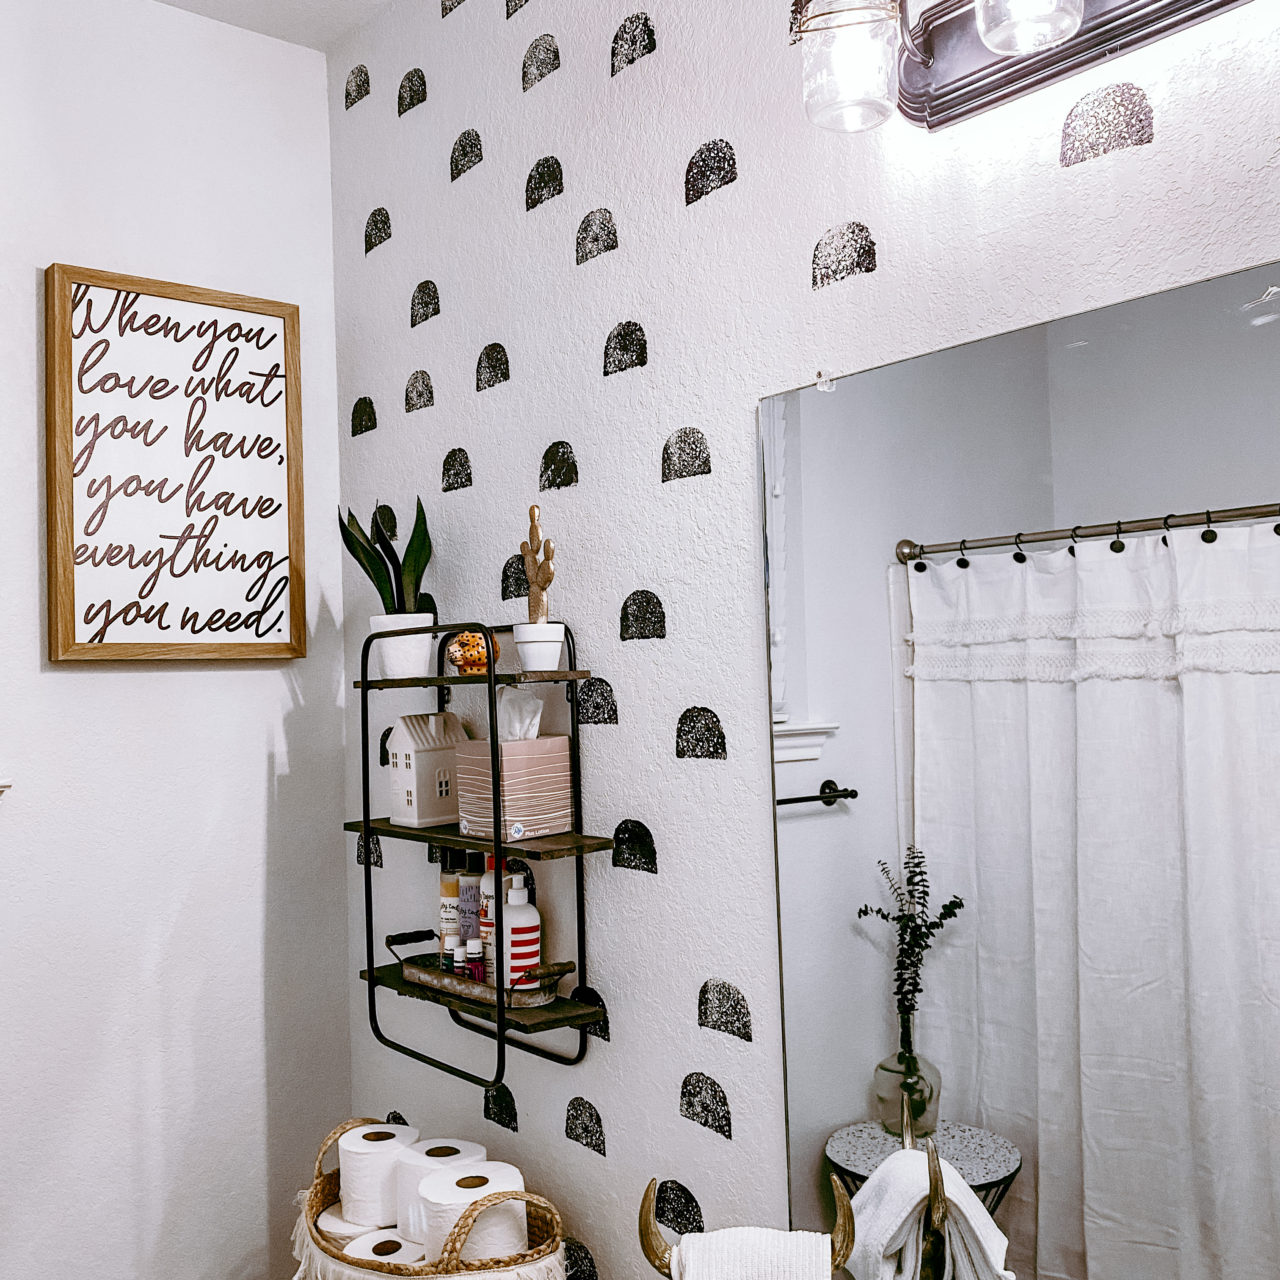 Painting your bathroom for under $50